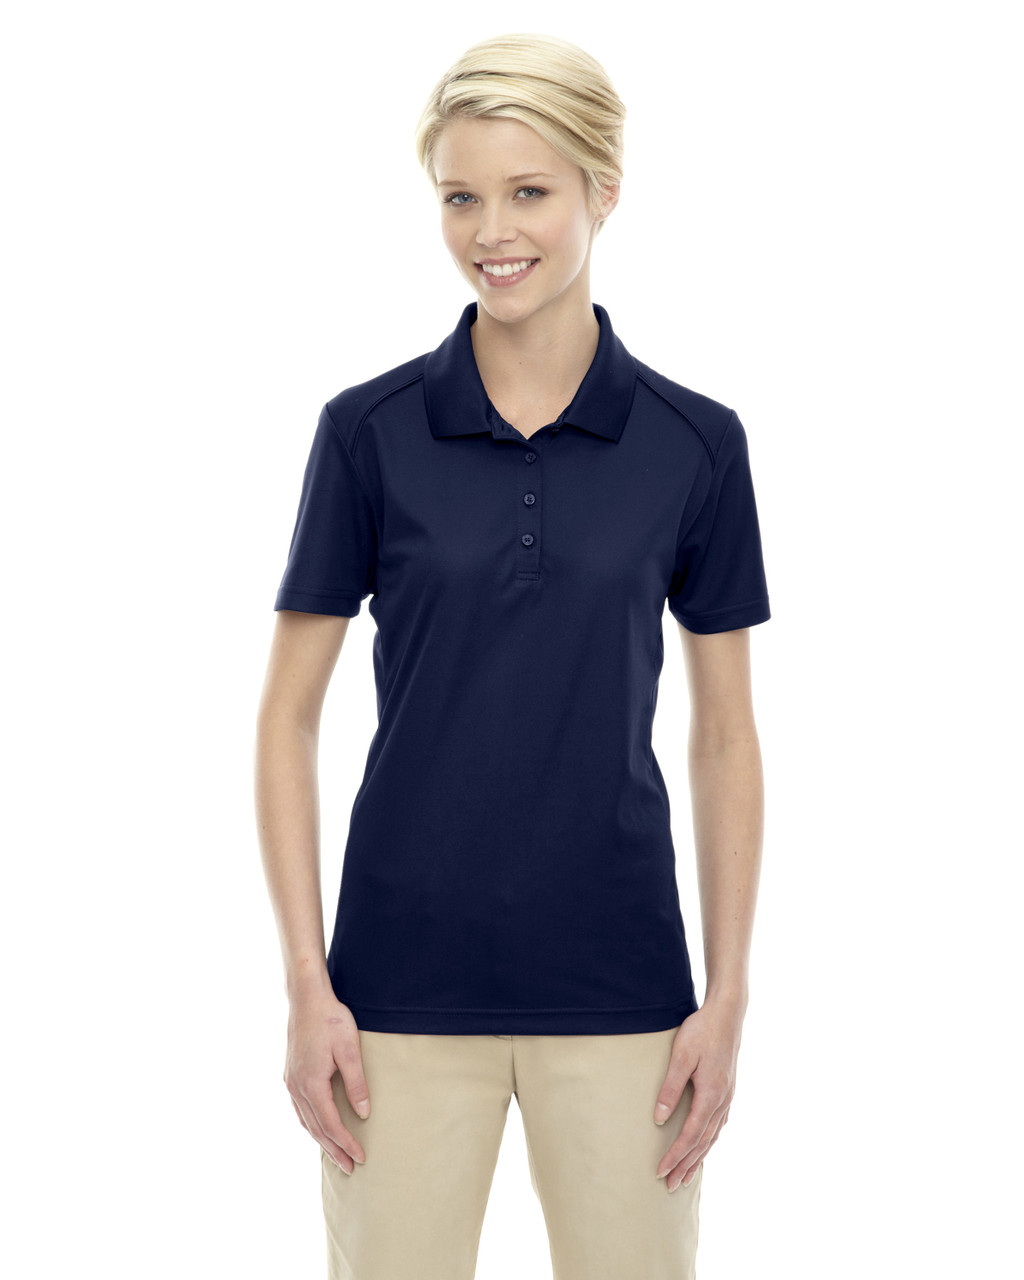 Classic Navy 75108 Ash City - Extreme Eperformance Ladies' Shield Short-Sleeve Polo Shirt